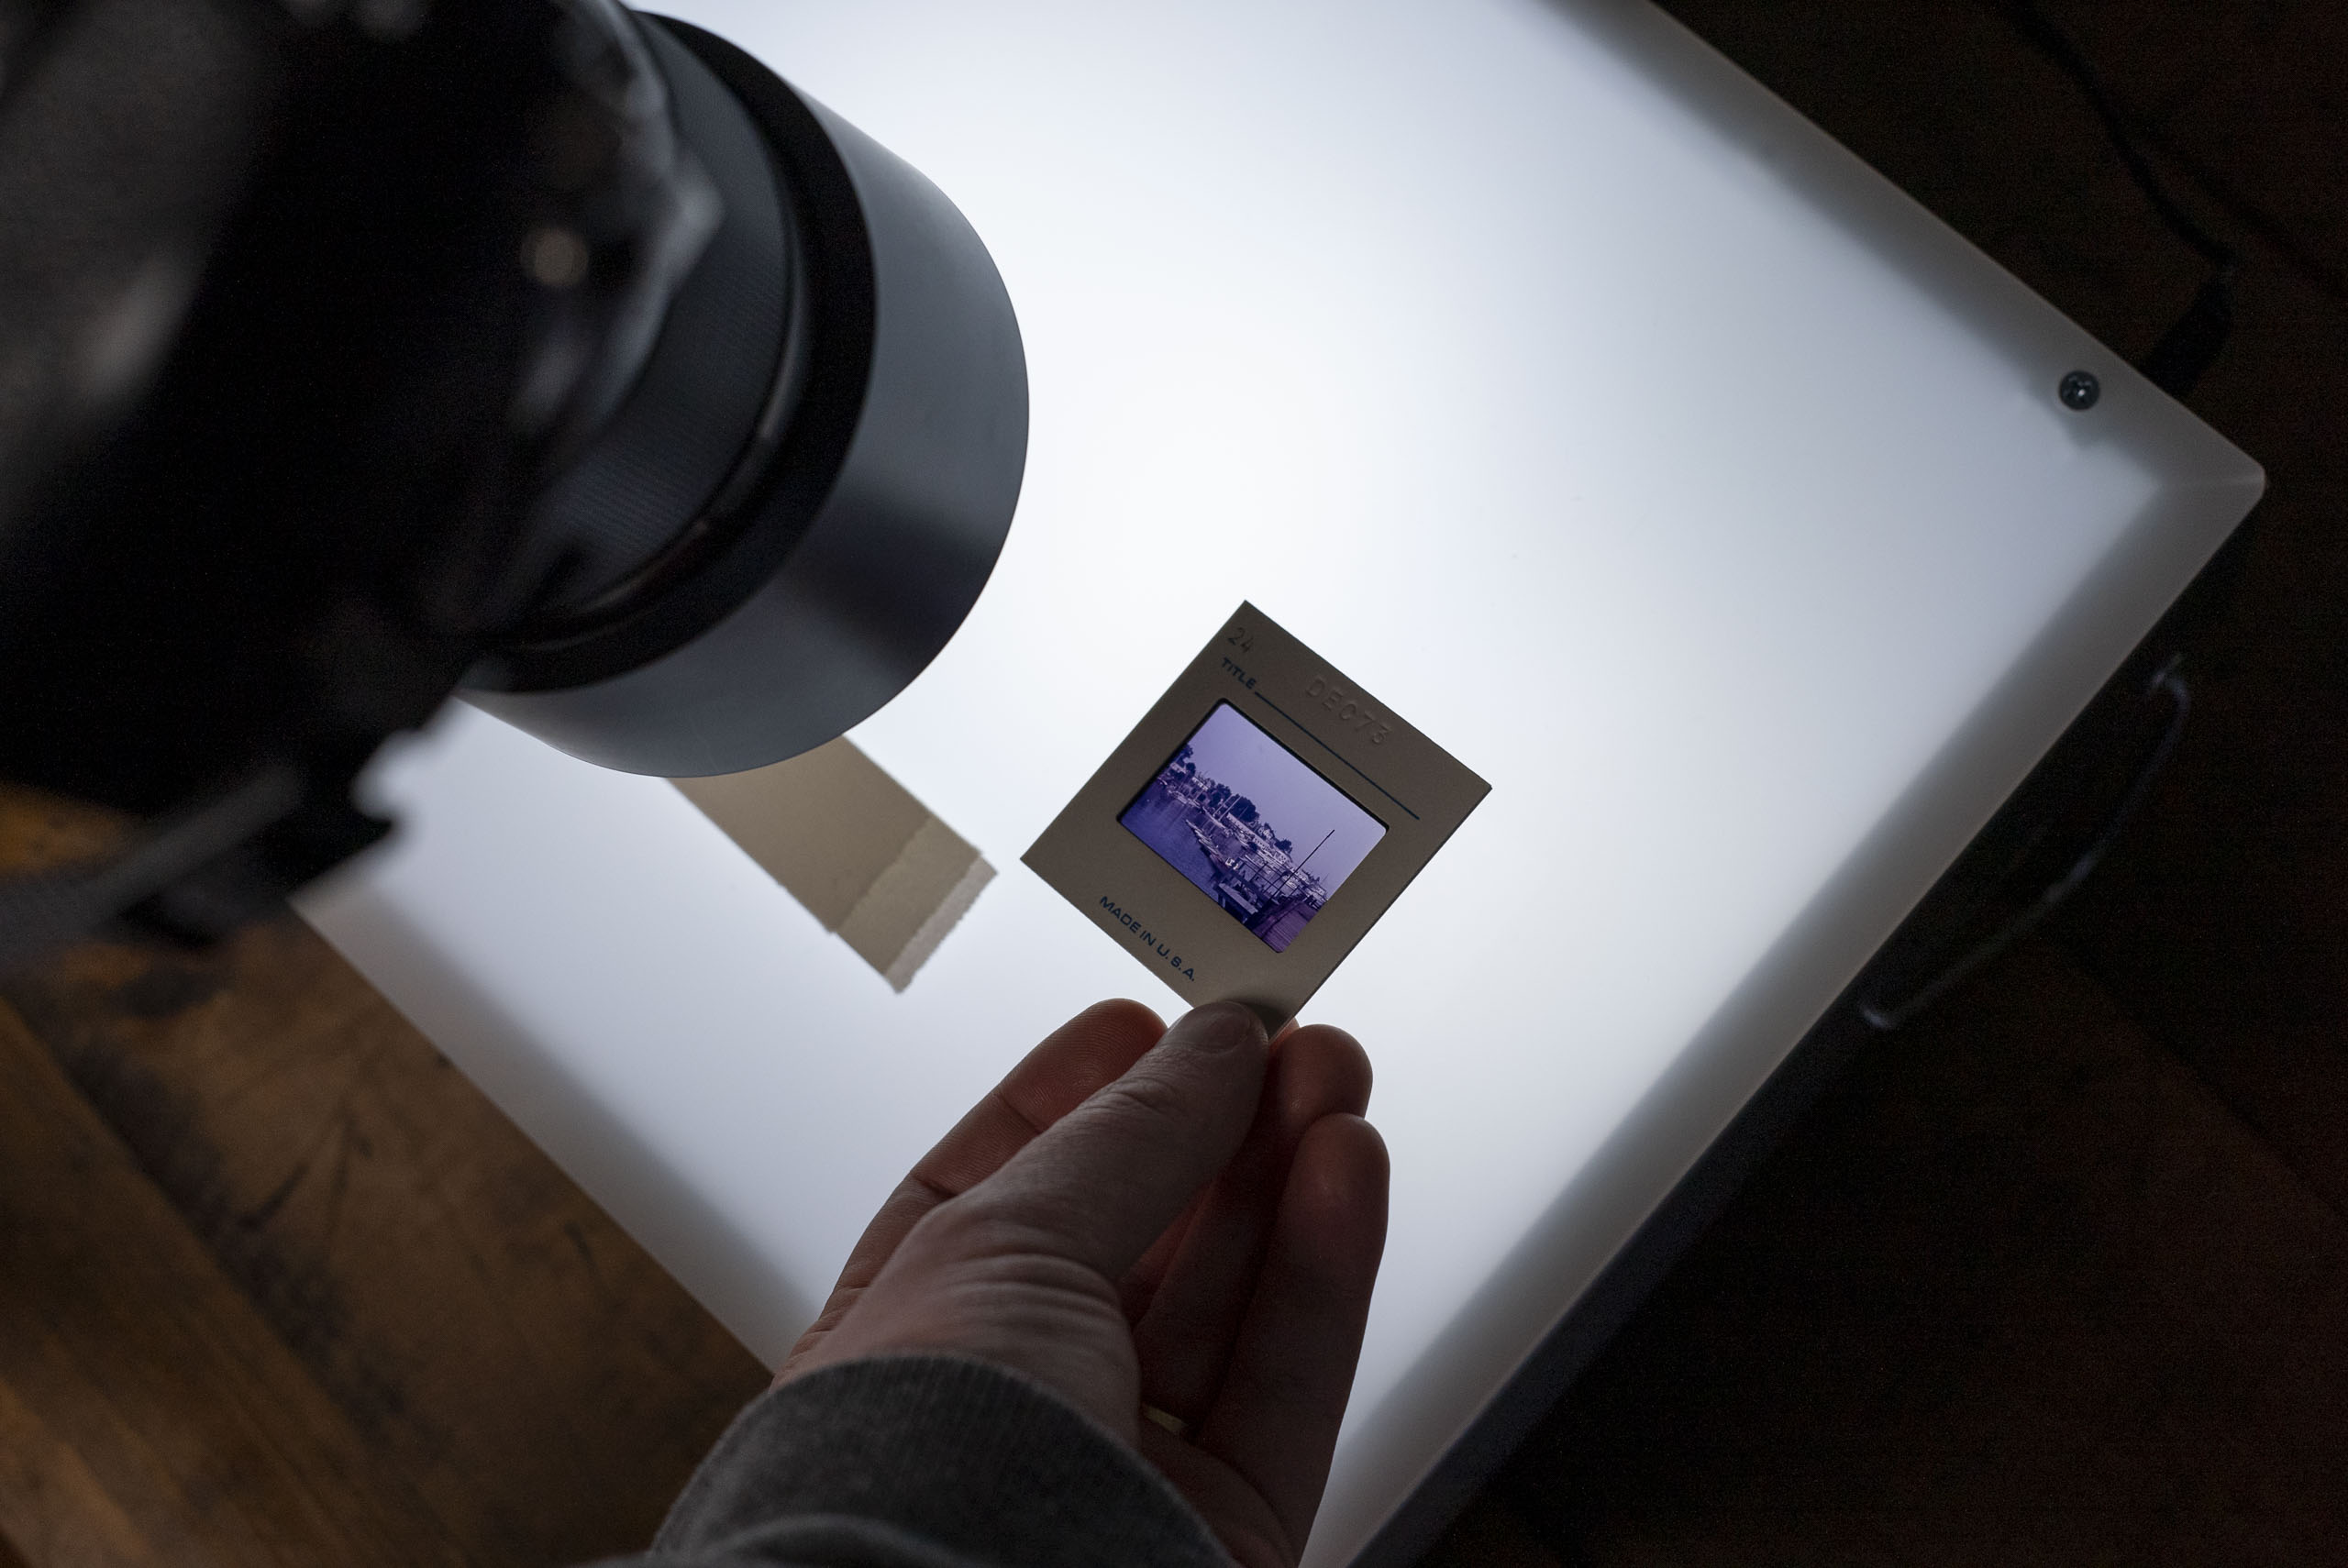 You should minimize handling film with your bare hands unless it already has some form of protection, such as a holder. Otherwise grease and oils from your hand can damage the film. Be careful!